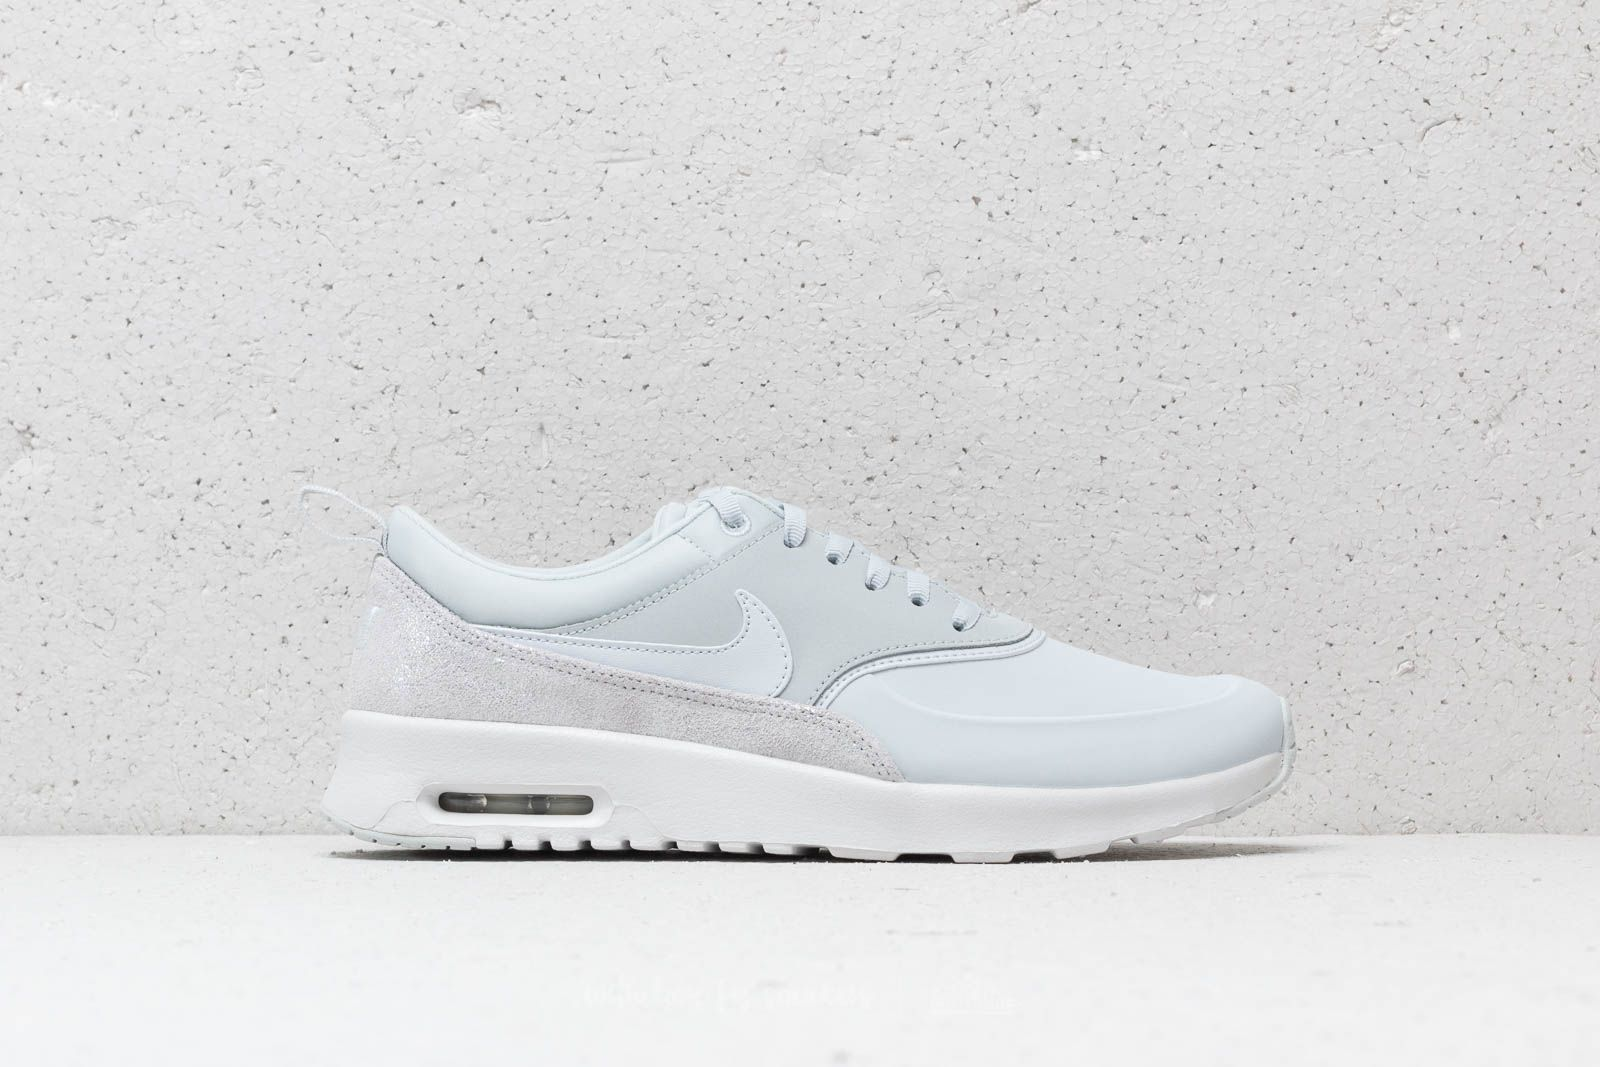 separation shoes ed5c9 1b086 Nike Air Max Thea Premium WMNS Pure Platinum  Pure Platinum at a great price  92